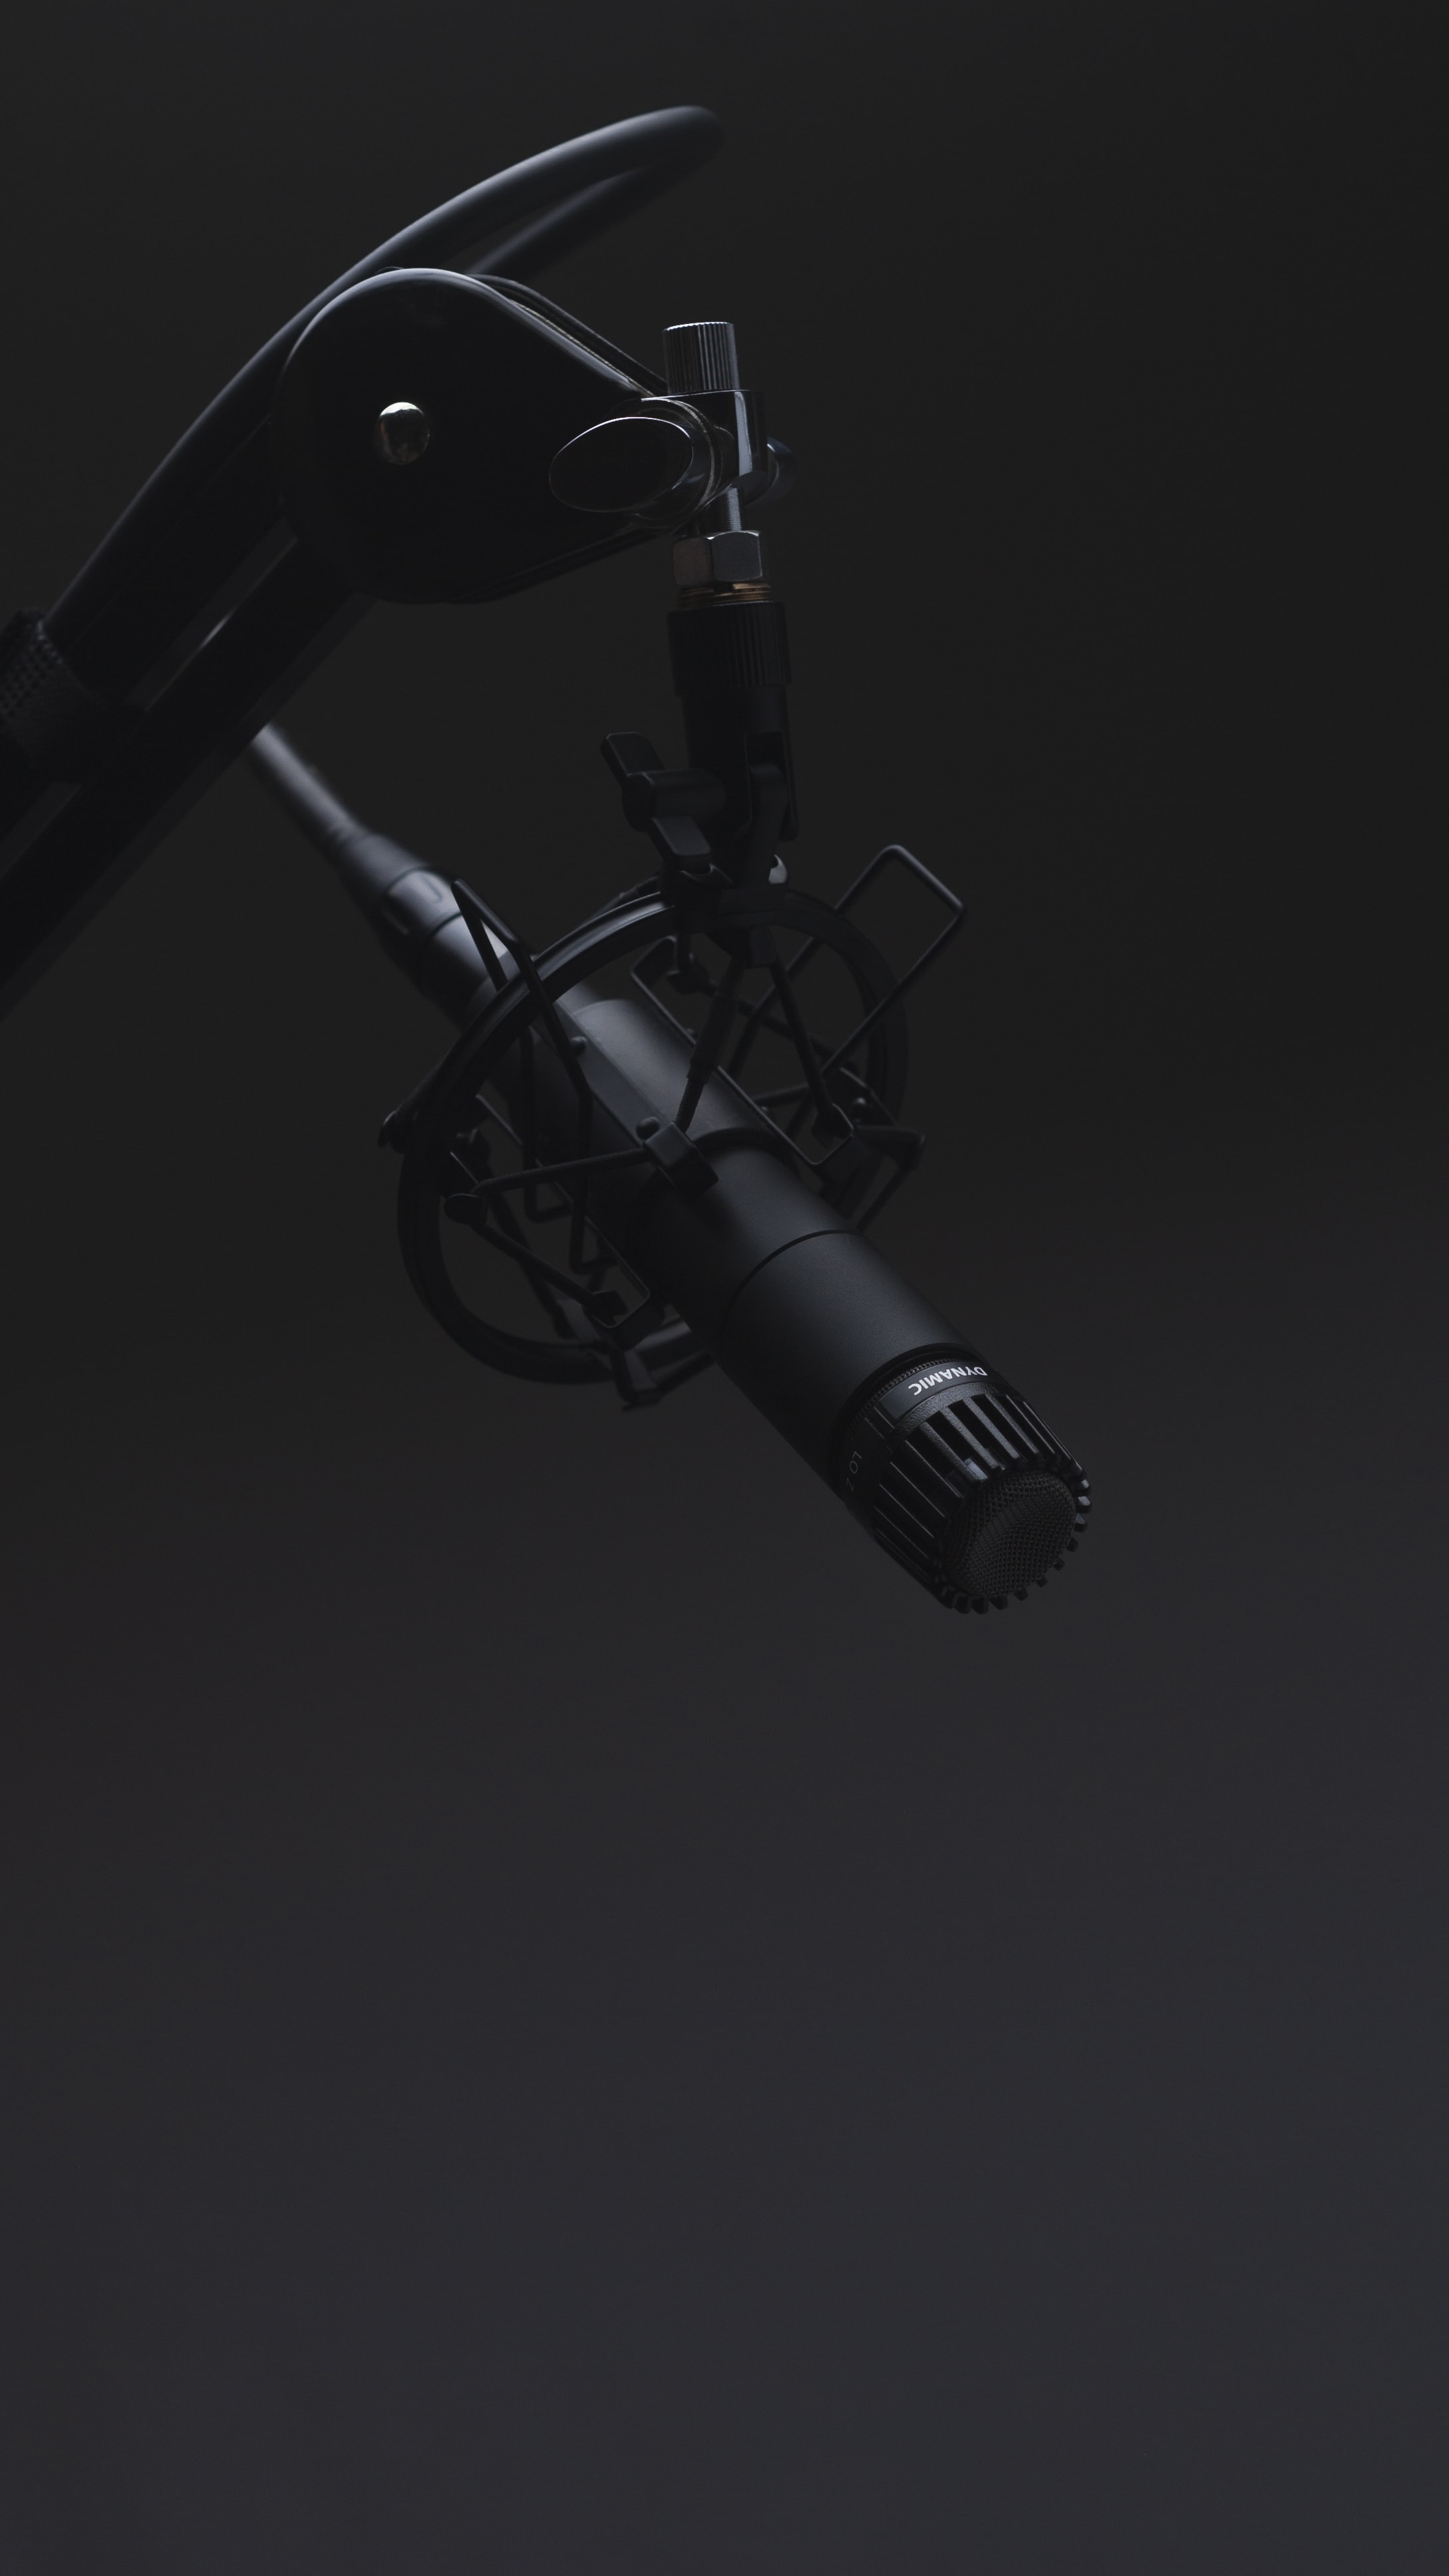 black microphone in dimmed room